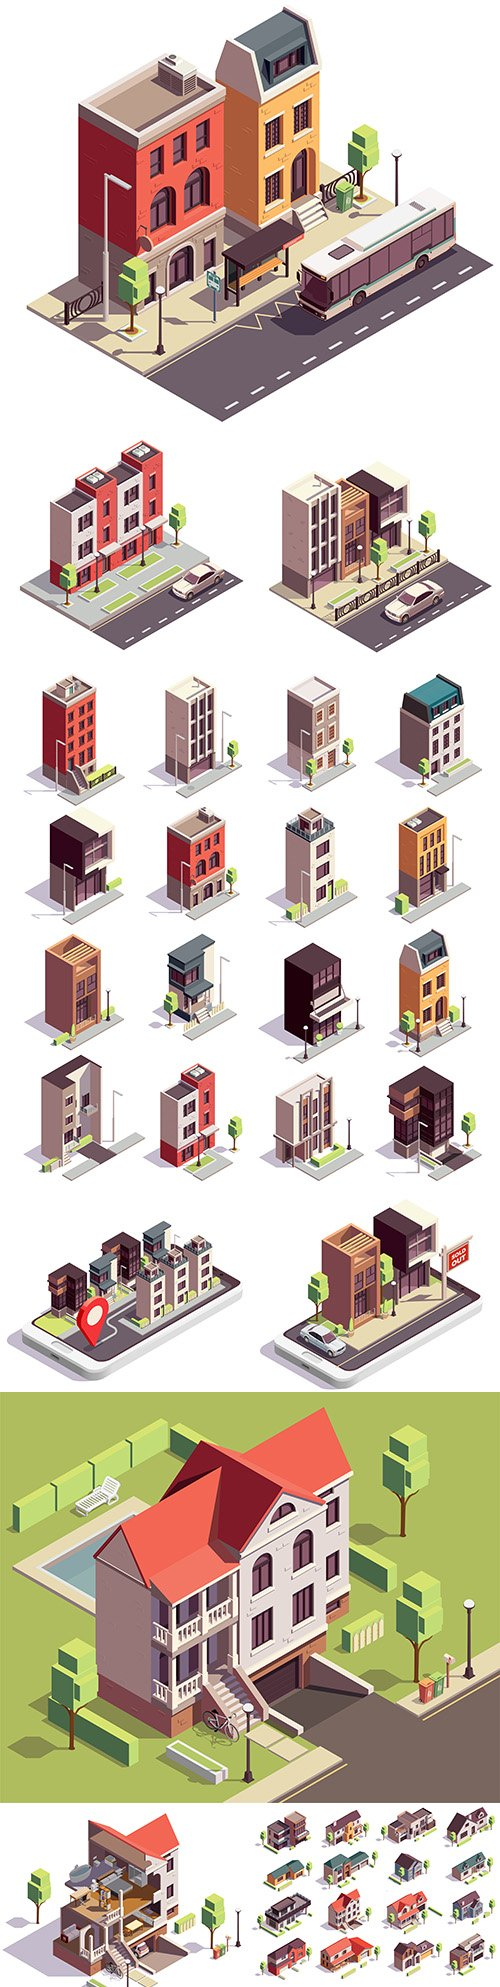 Isometric compositions townhouses overlooking City Street